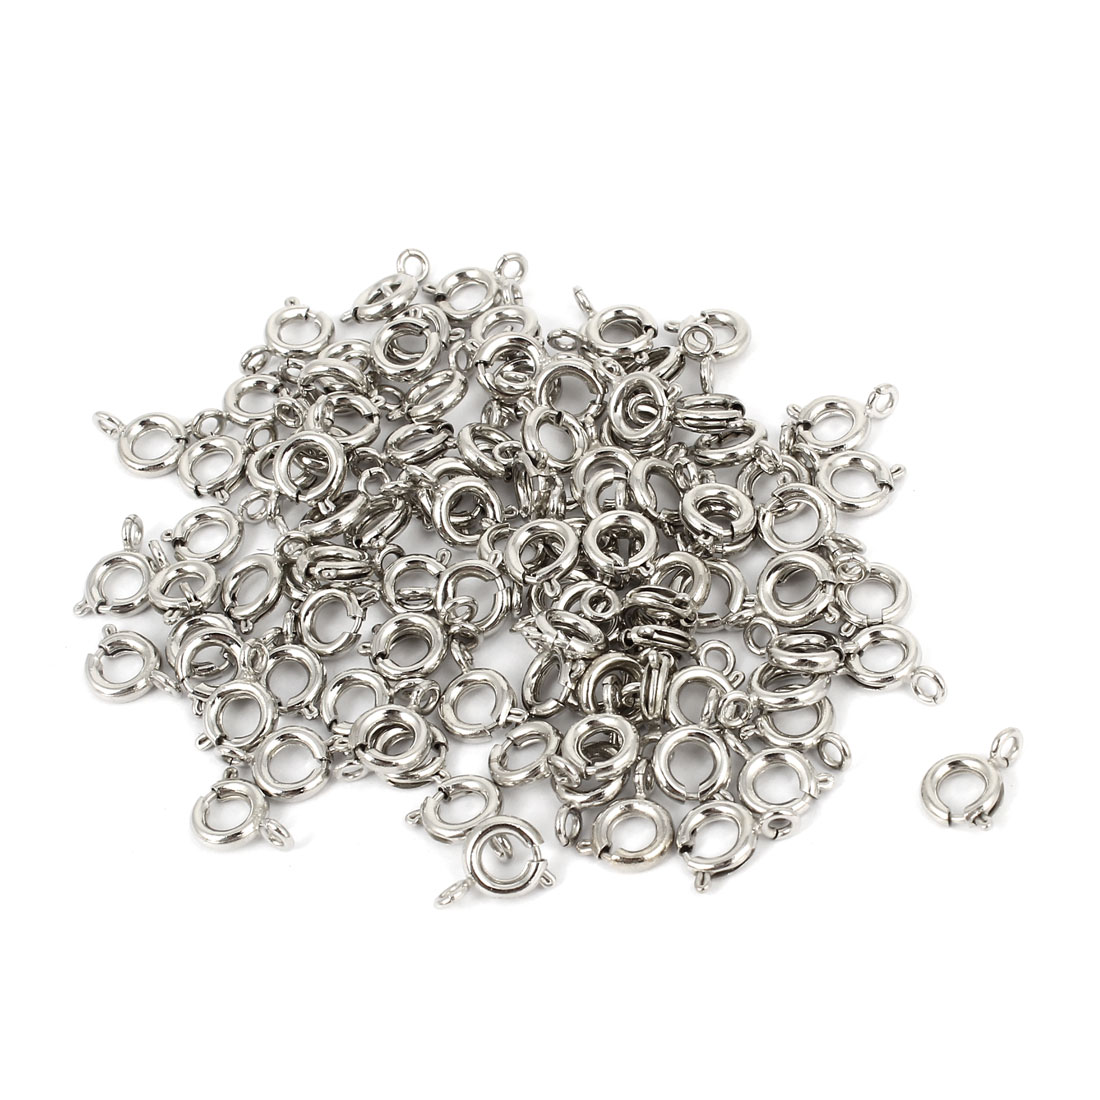 6mm Round Eyelet Spring Ring Clasps Jewelry Chain Connector Kits 100 Pcs